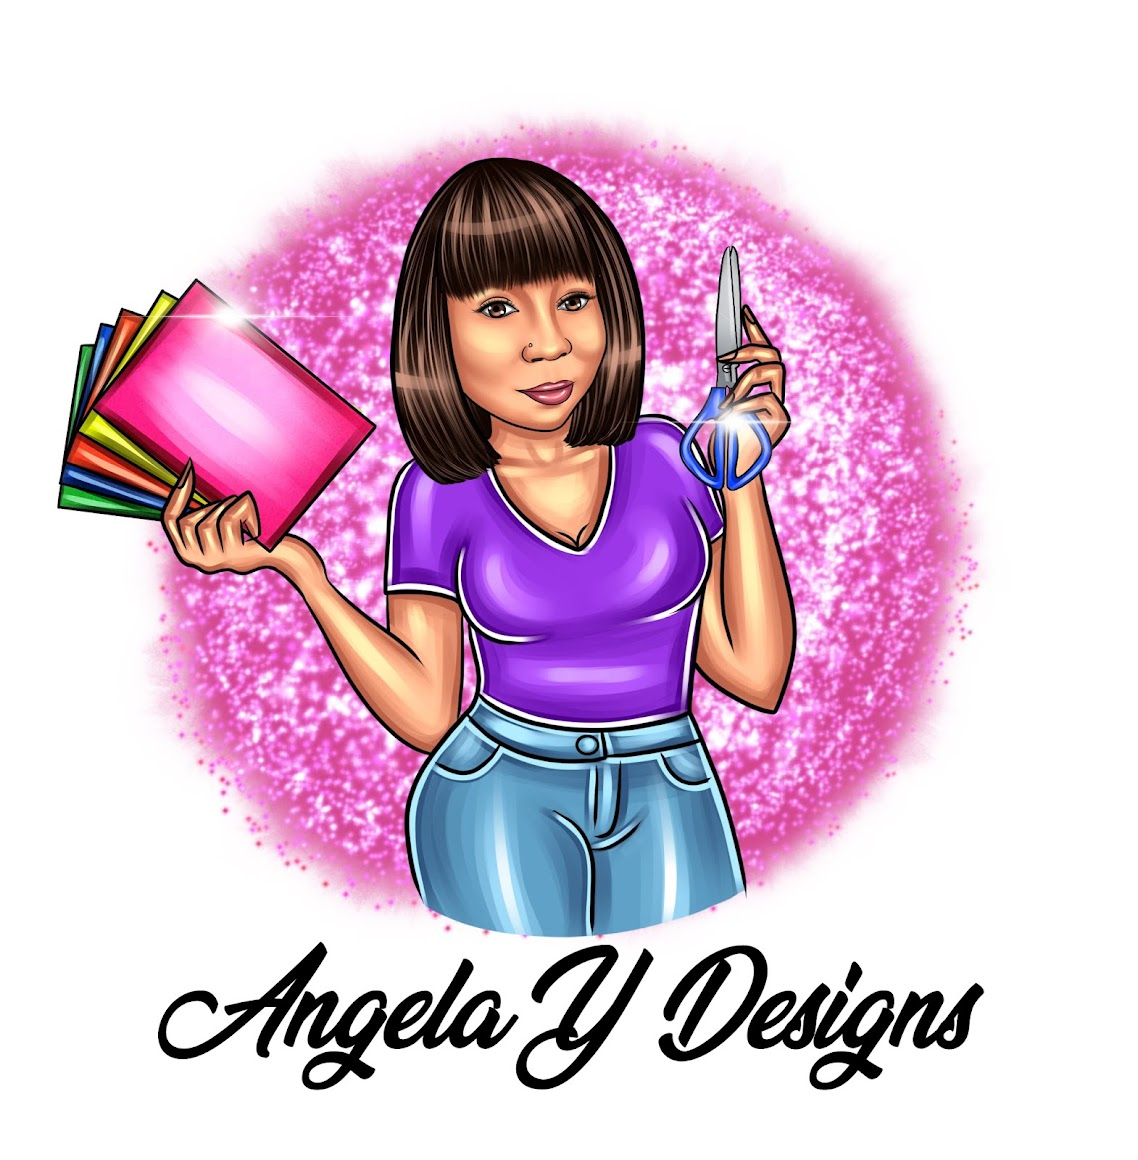 Angela Y Designs